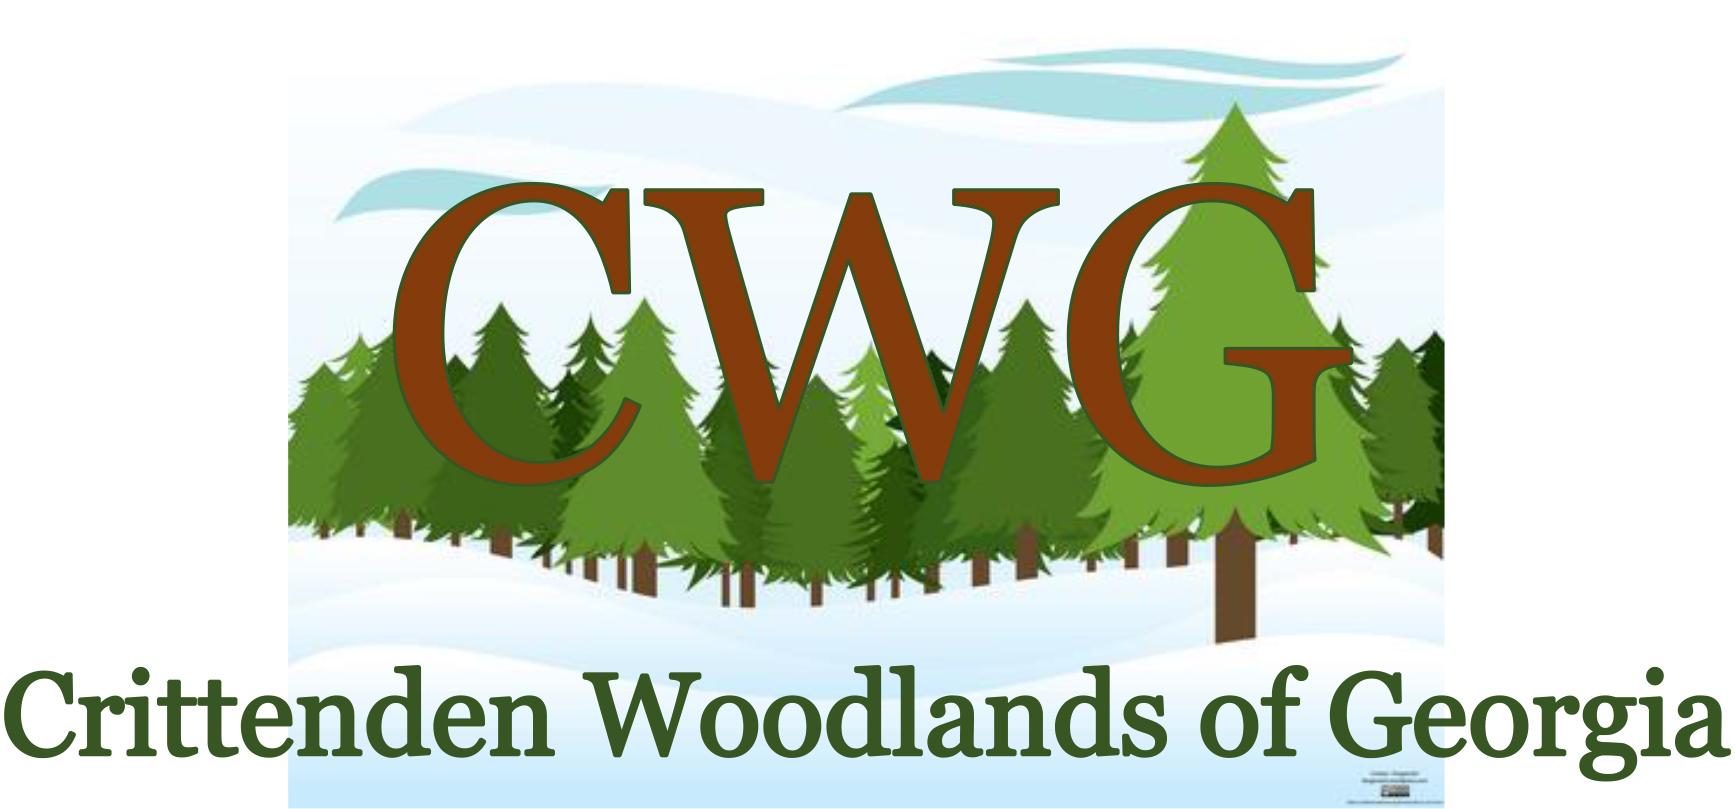 Crittenden Woodlands for Georgia